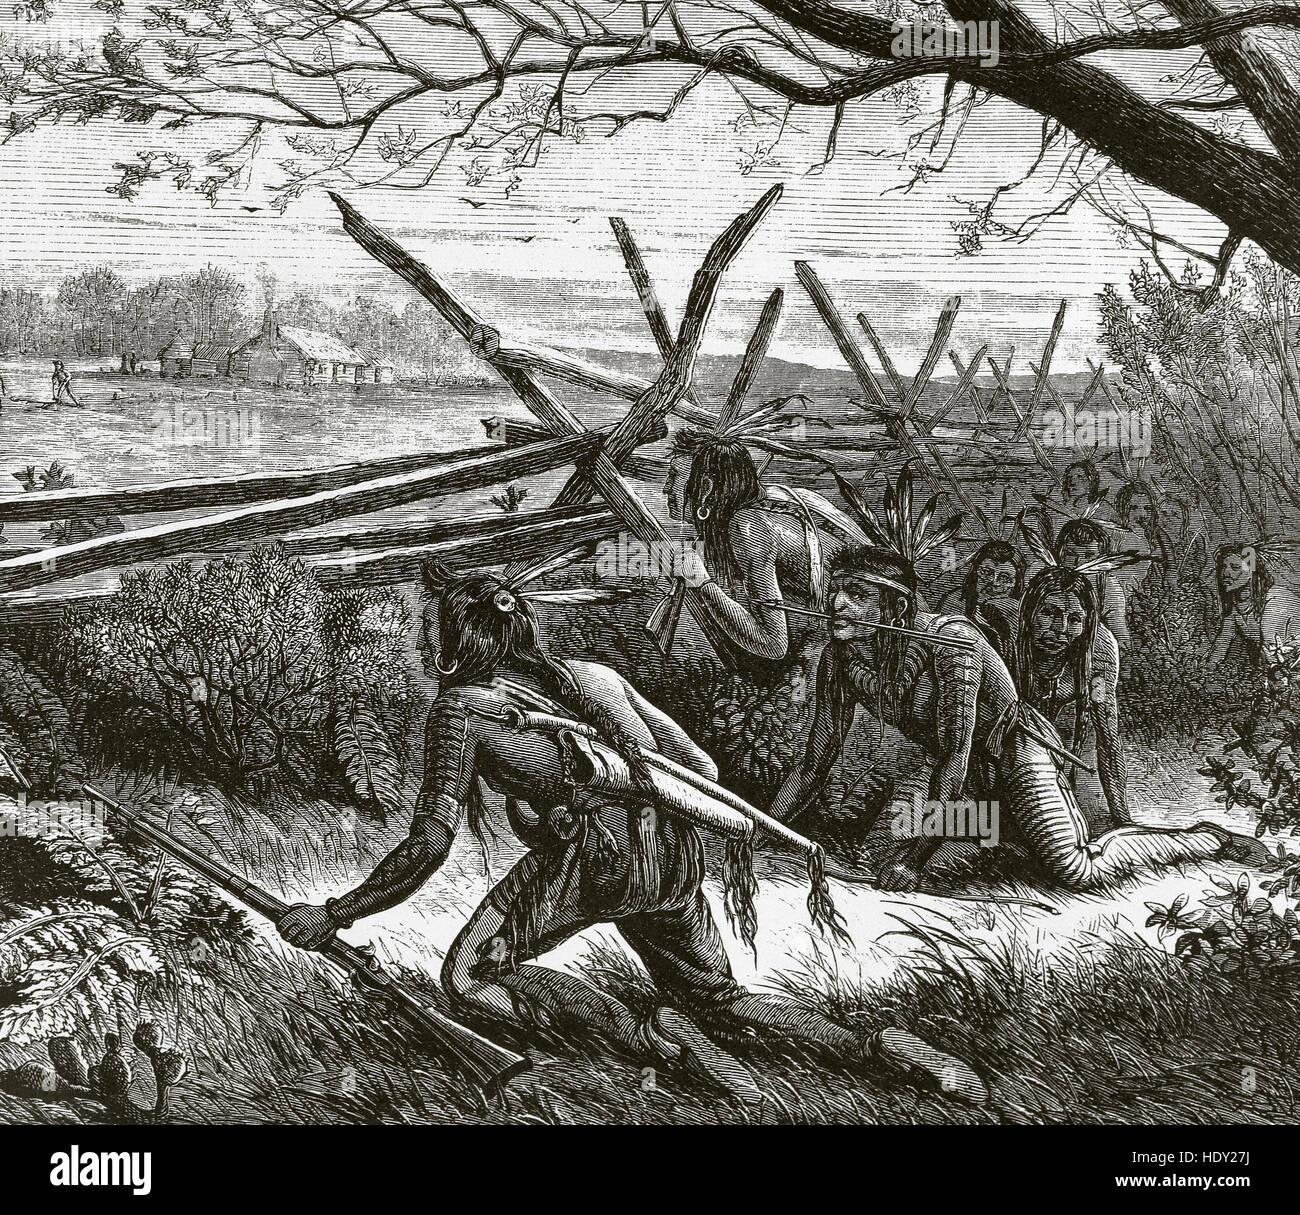 Sioux Indians armed with rifles and arrows, stealthily approaching a farm. Engraving in 'Harper's Weekly', - Stock Image